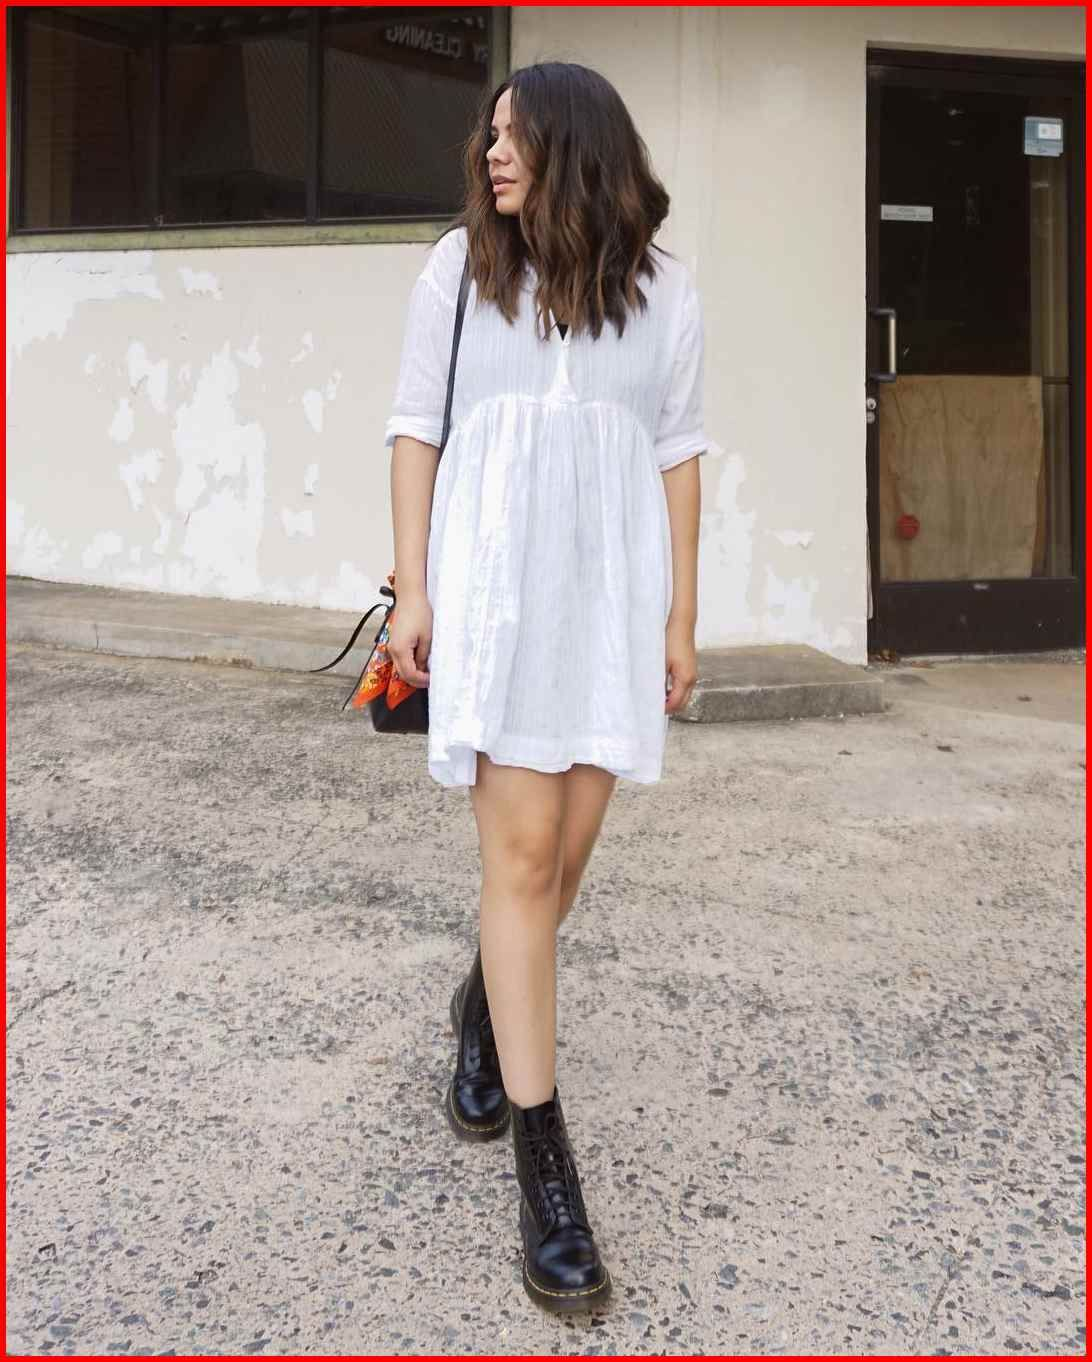 2fbdb62343 What to Wear to a Concert - 8 Outfit Ideas to Inspire You | The ... |  Dresses for Women